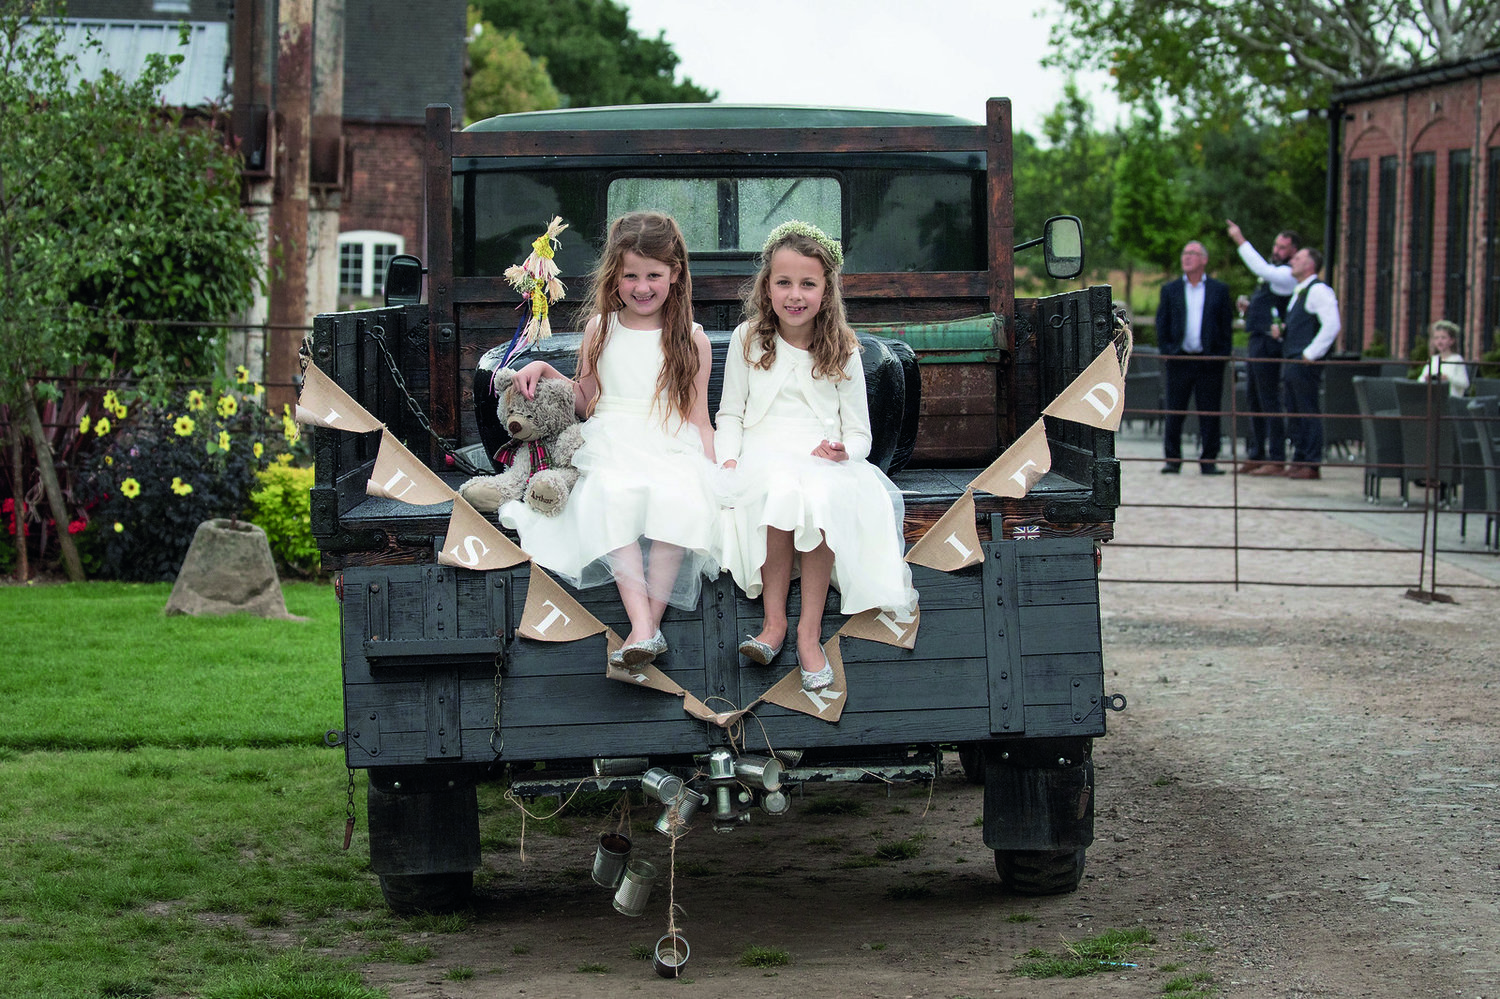 Rural wedding location in Leicestershire | Upper Rectory Farm Cottages